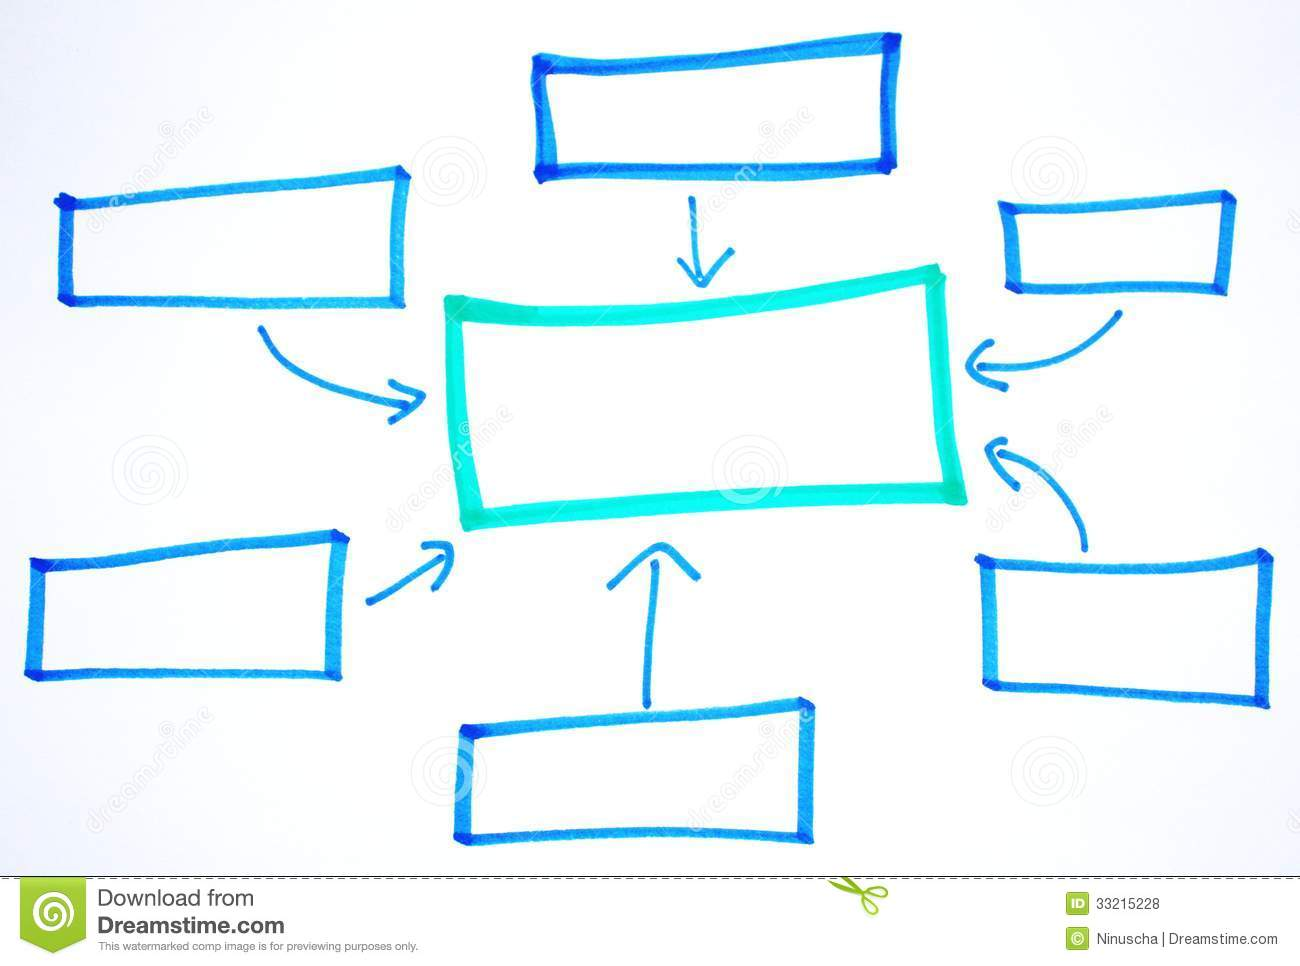 blank business diagrams royalty free stock photos   image    blank business diagrams